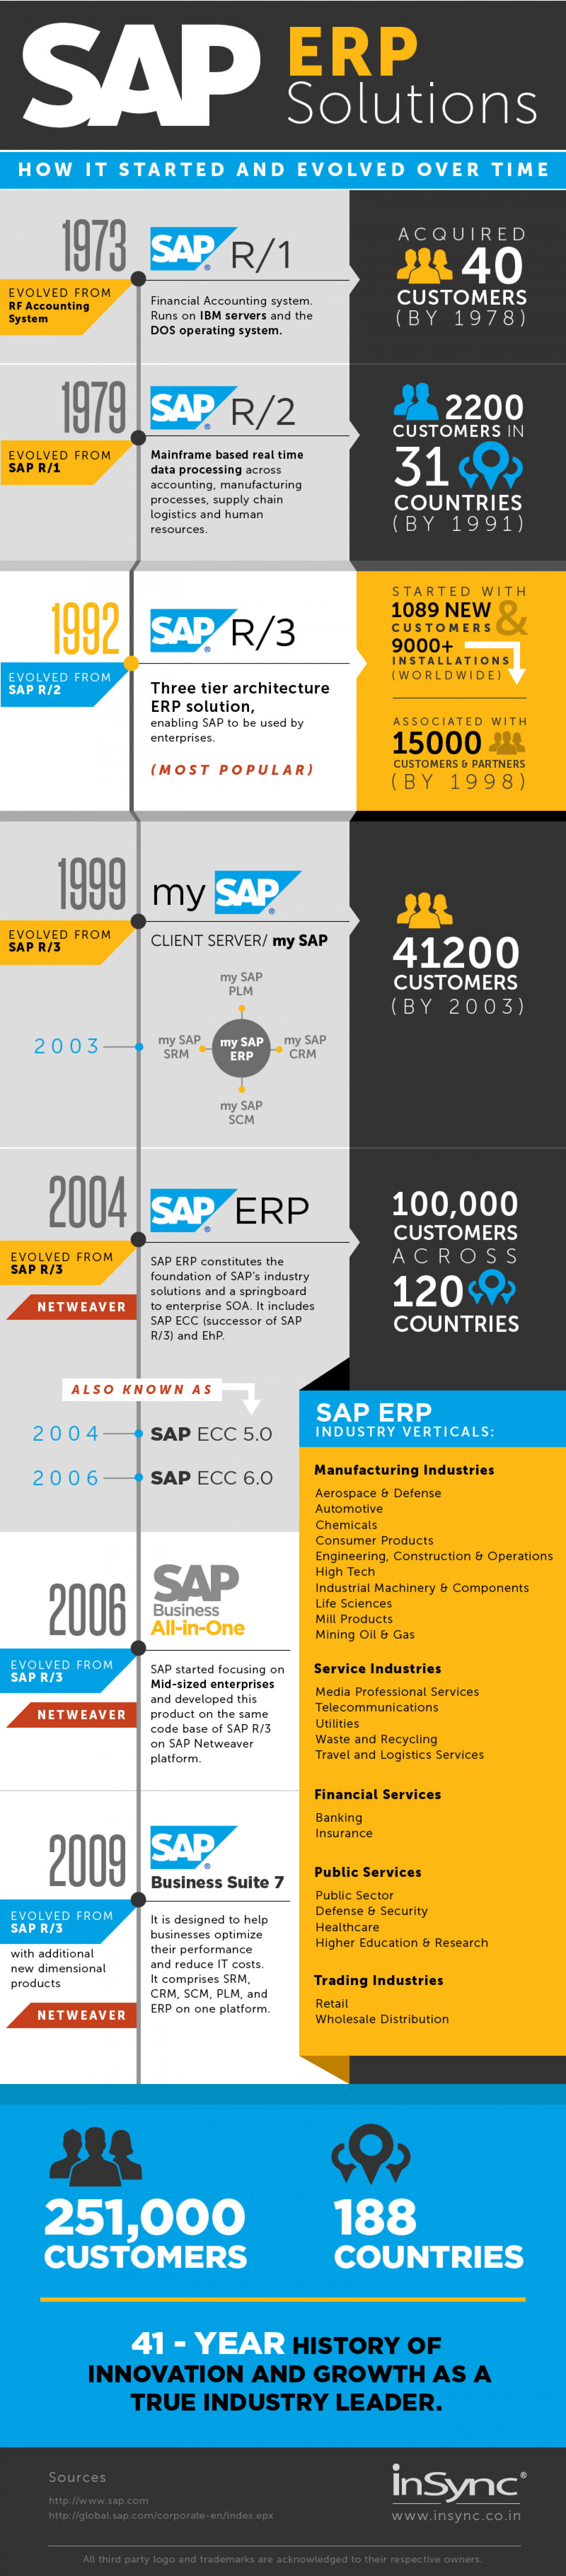 SAP ERP Solutions - How it evolved over time Infographic